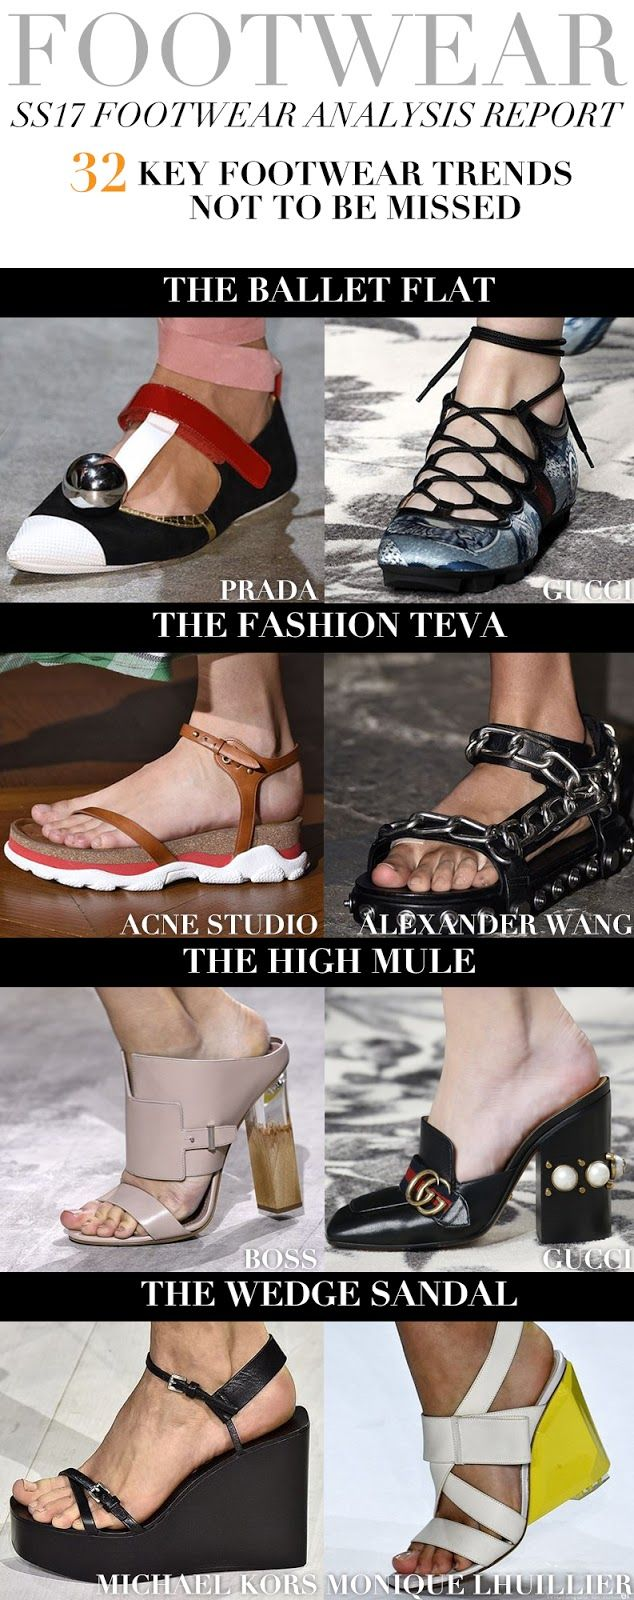 Spring 2016 Trend Report - Fashion Vignette : Footwear - The Ballet Flat, The Fashion Teva, The High Mule, The Wedge Sandal